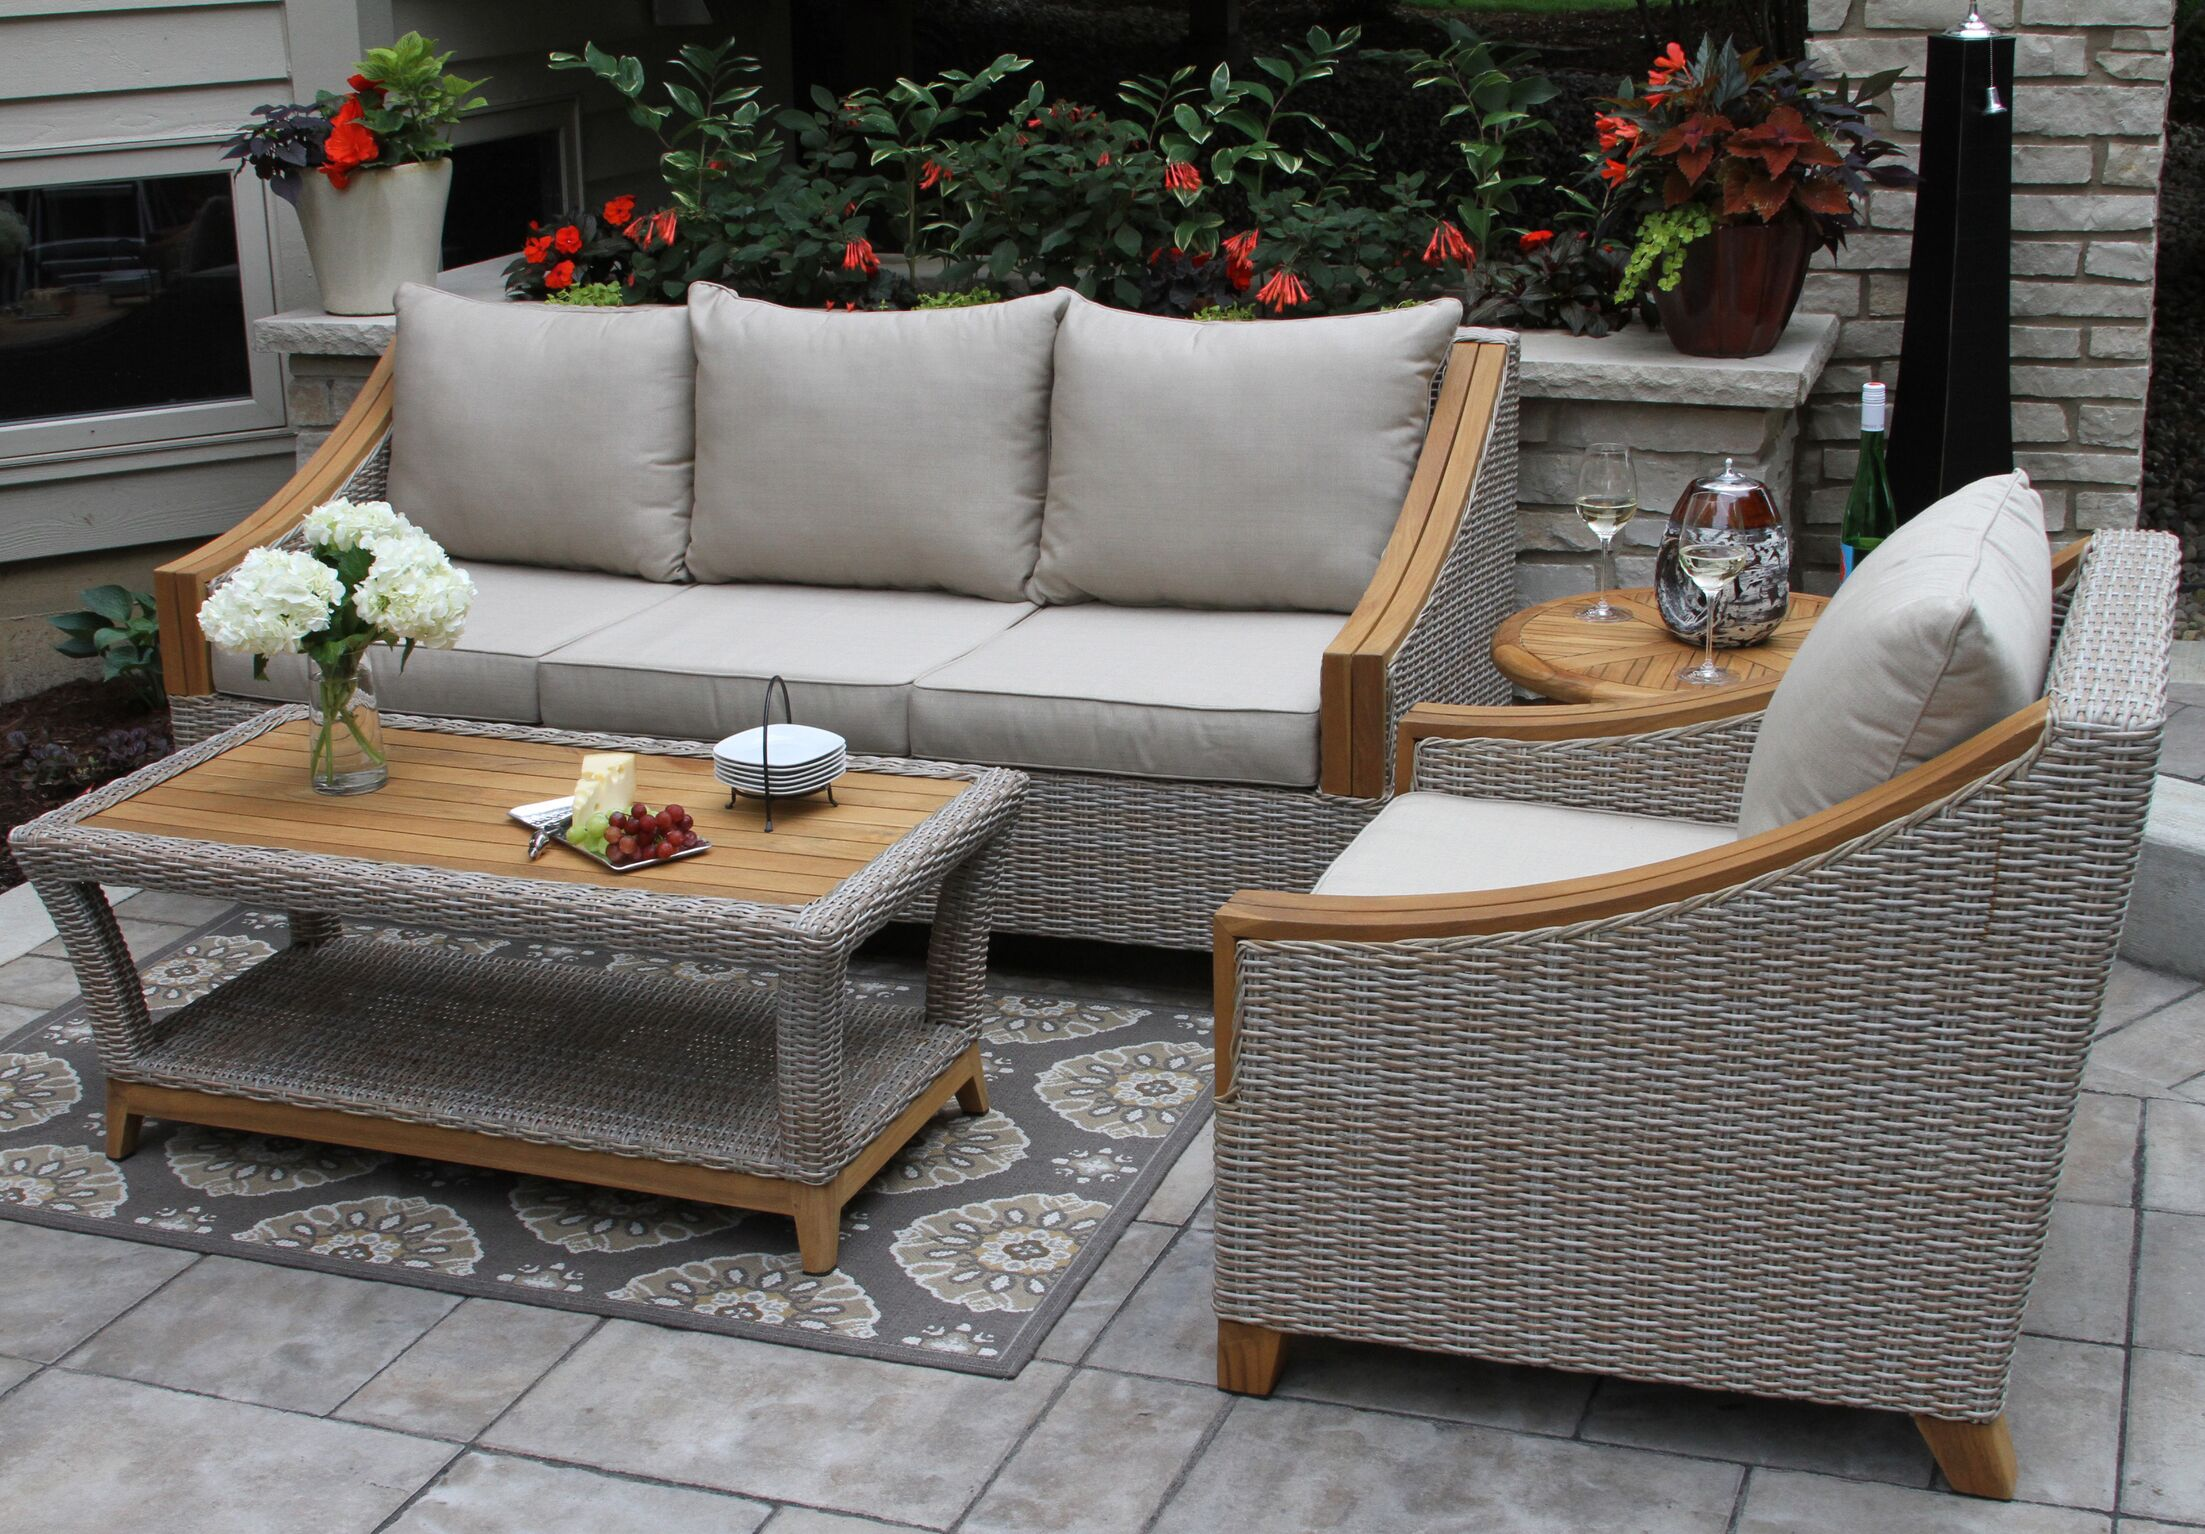 Asta Teak Seating Group with Sunbrella Cushions